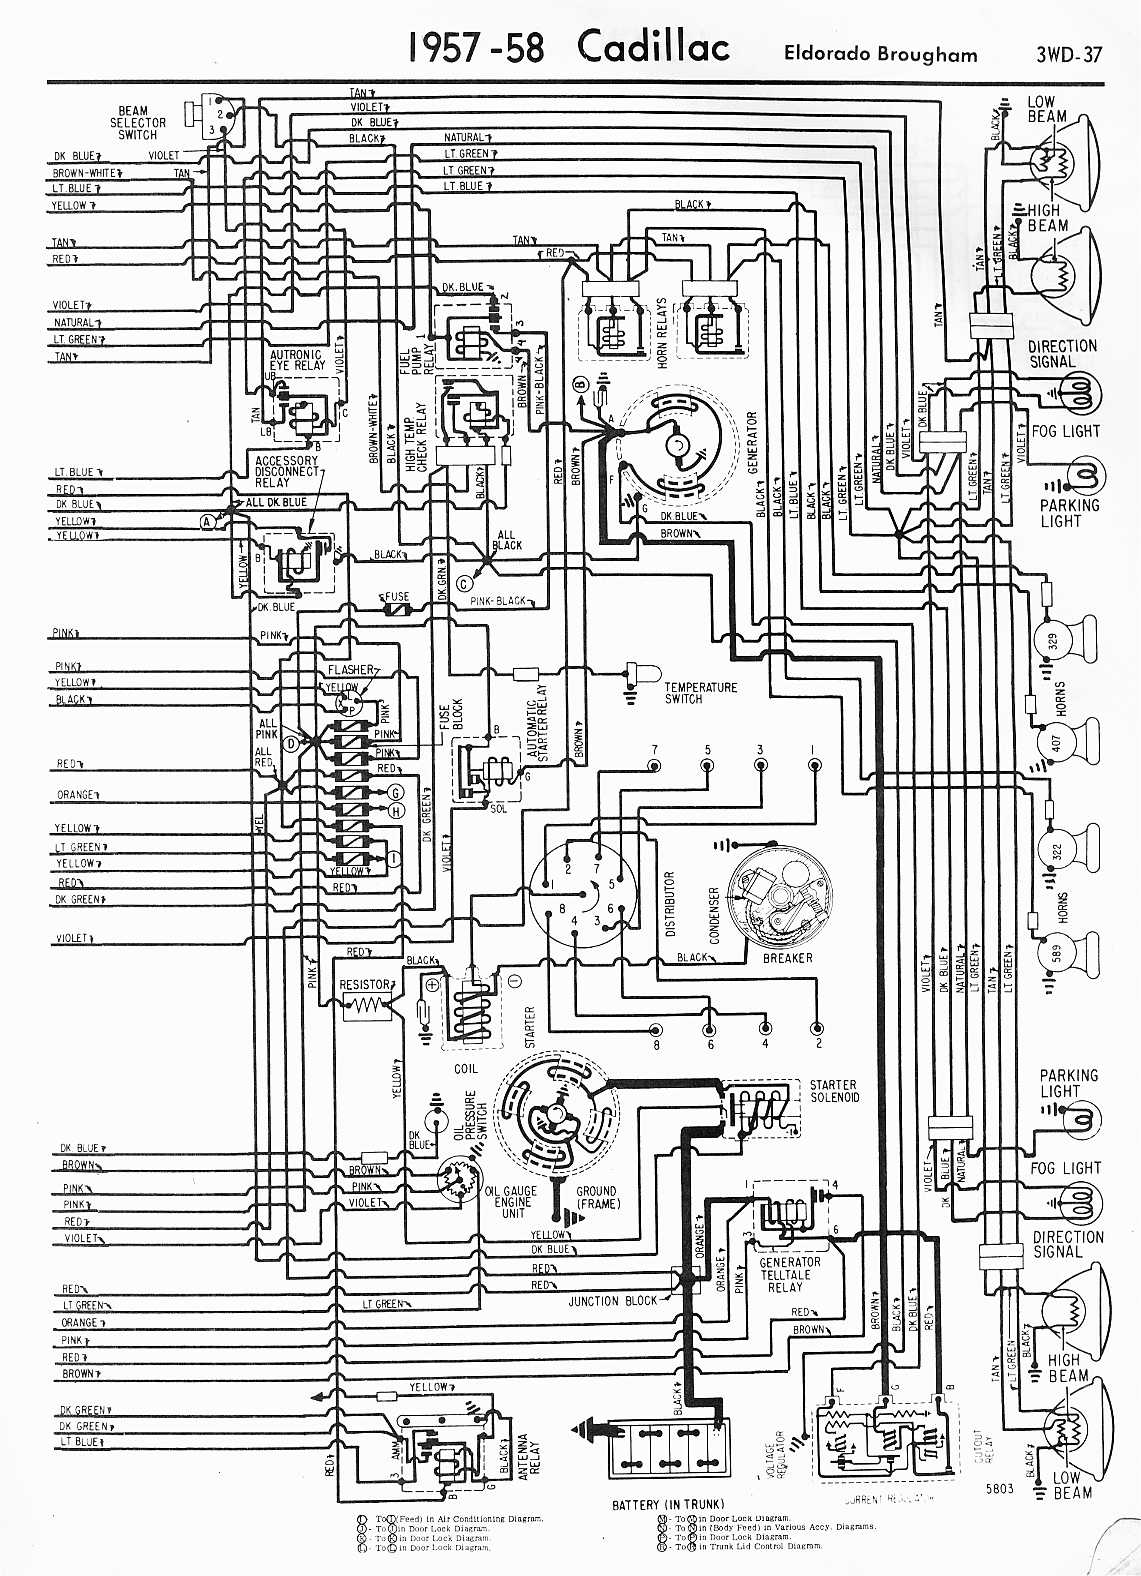 1961 Cadillac Wiring Diagram Electrical Schematics 62 Ford Generator Diagrams 1957 1965 Truck 58 Eldorado Brougham Right